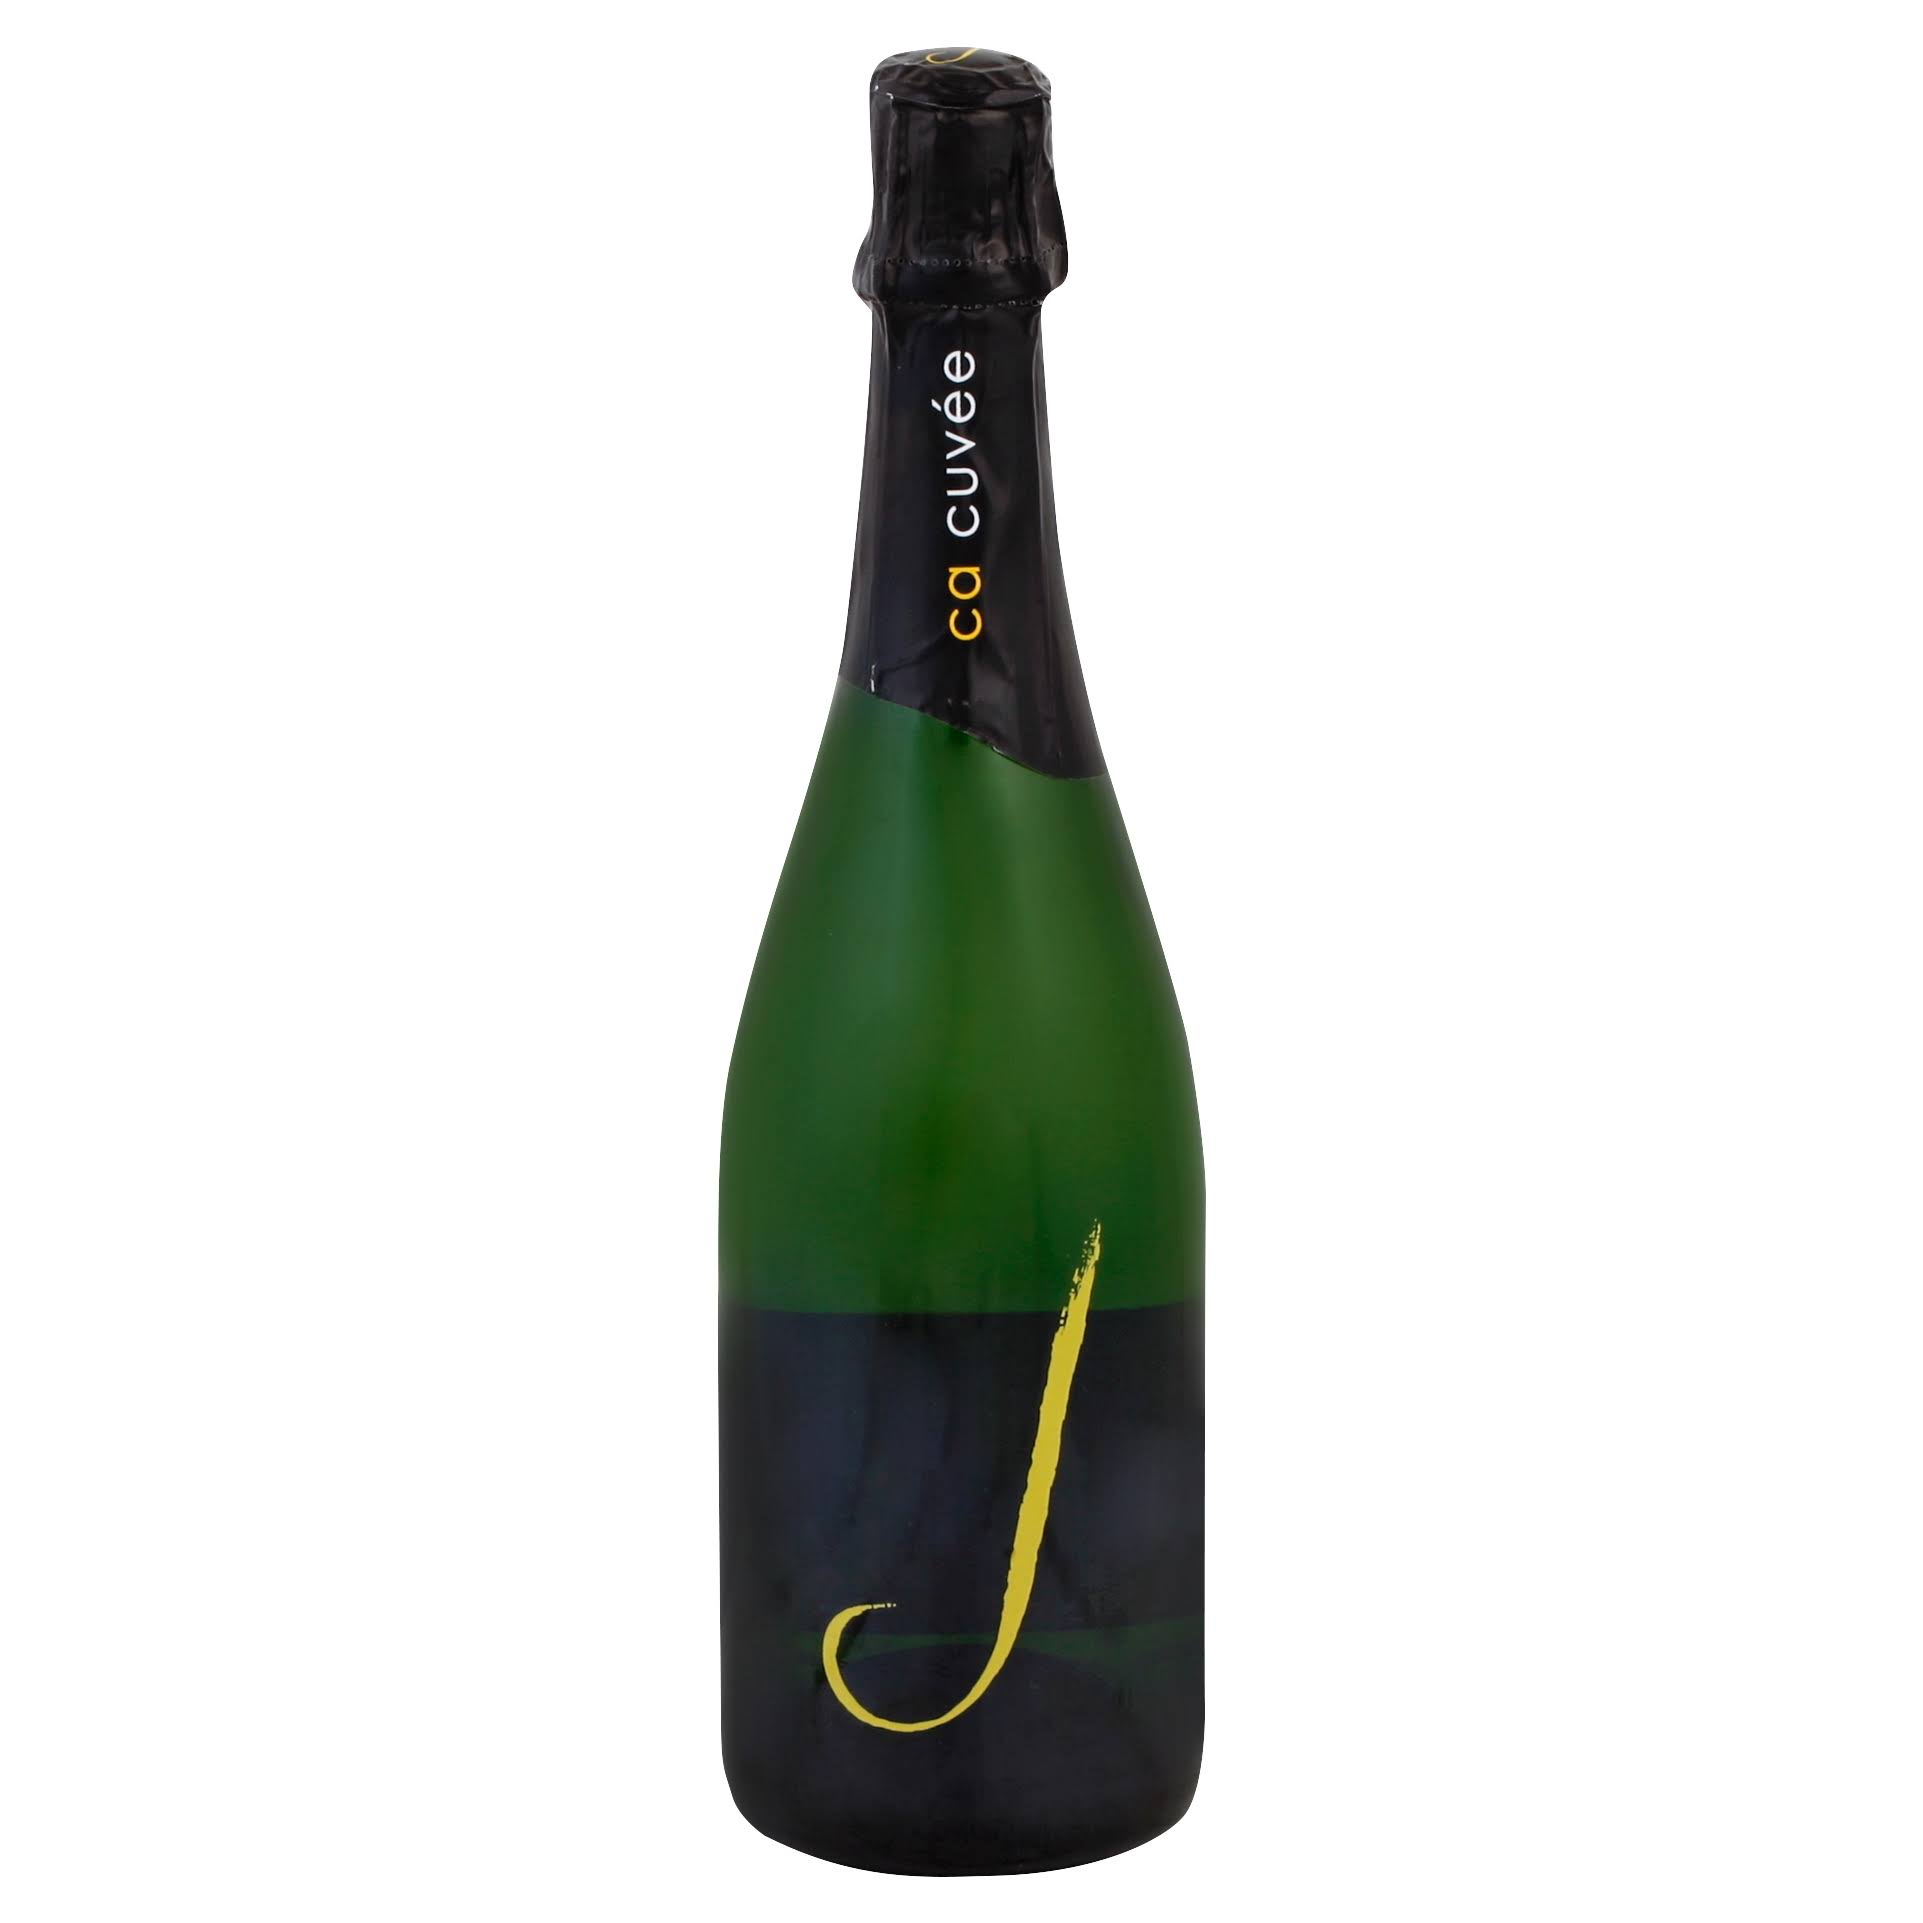 J Cuvee, California - 750 ml